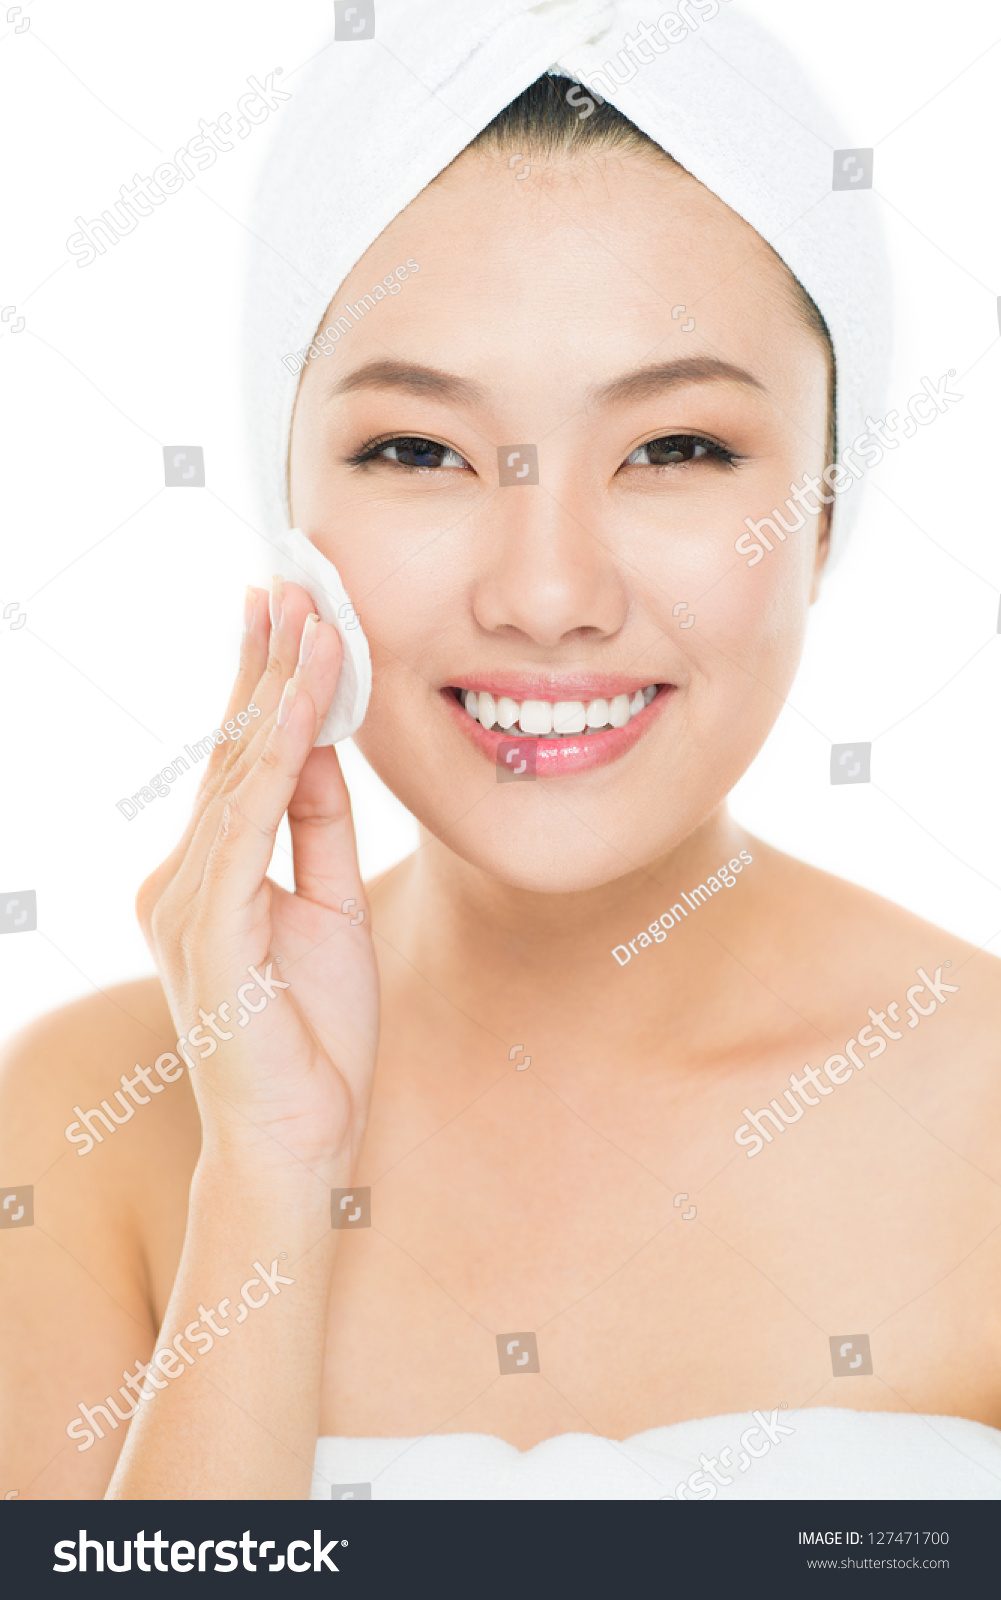 Vertical Portrait Of Pretty 14 Year Old Girl Stock Image: Vertical Portrait Of A Young Woman Cleansing Her Face With